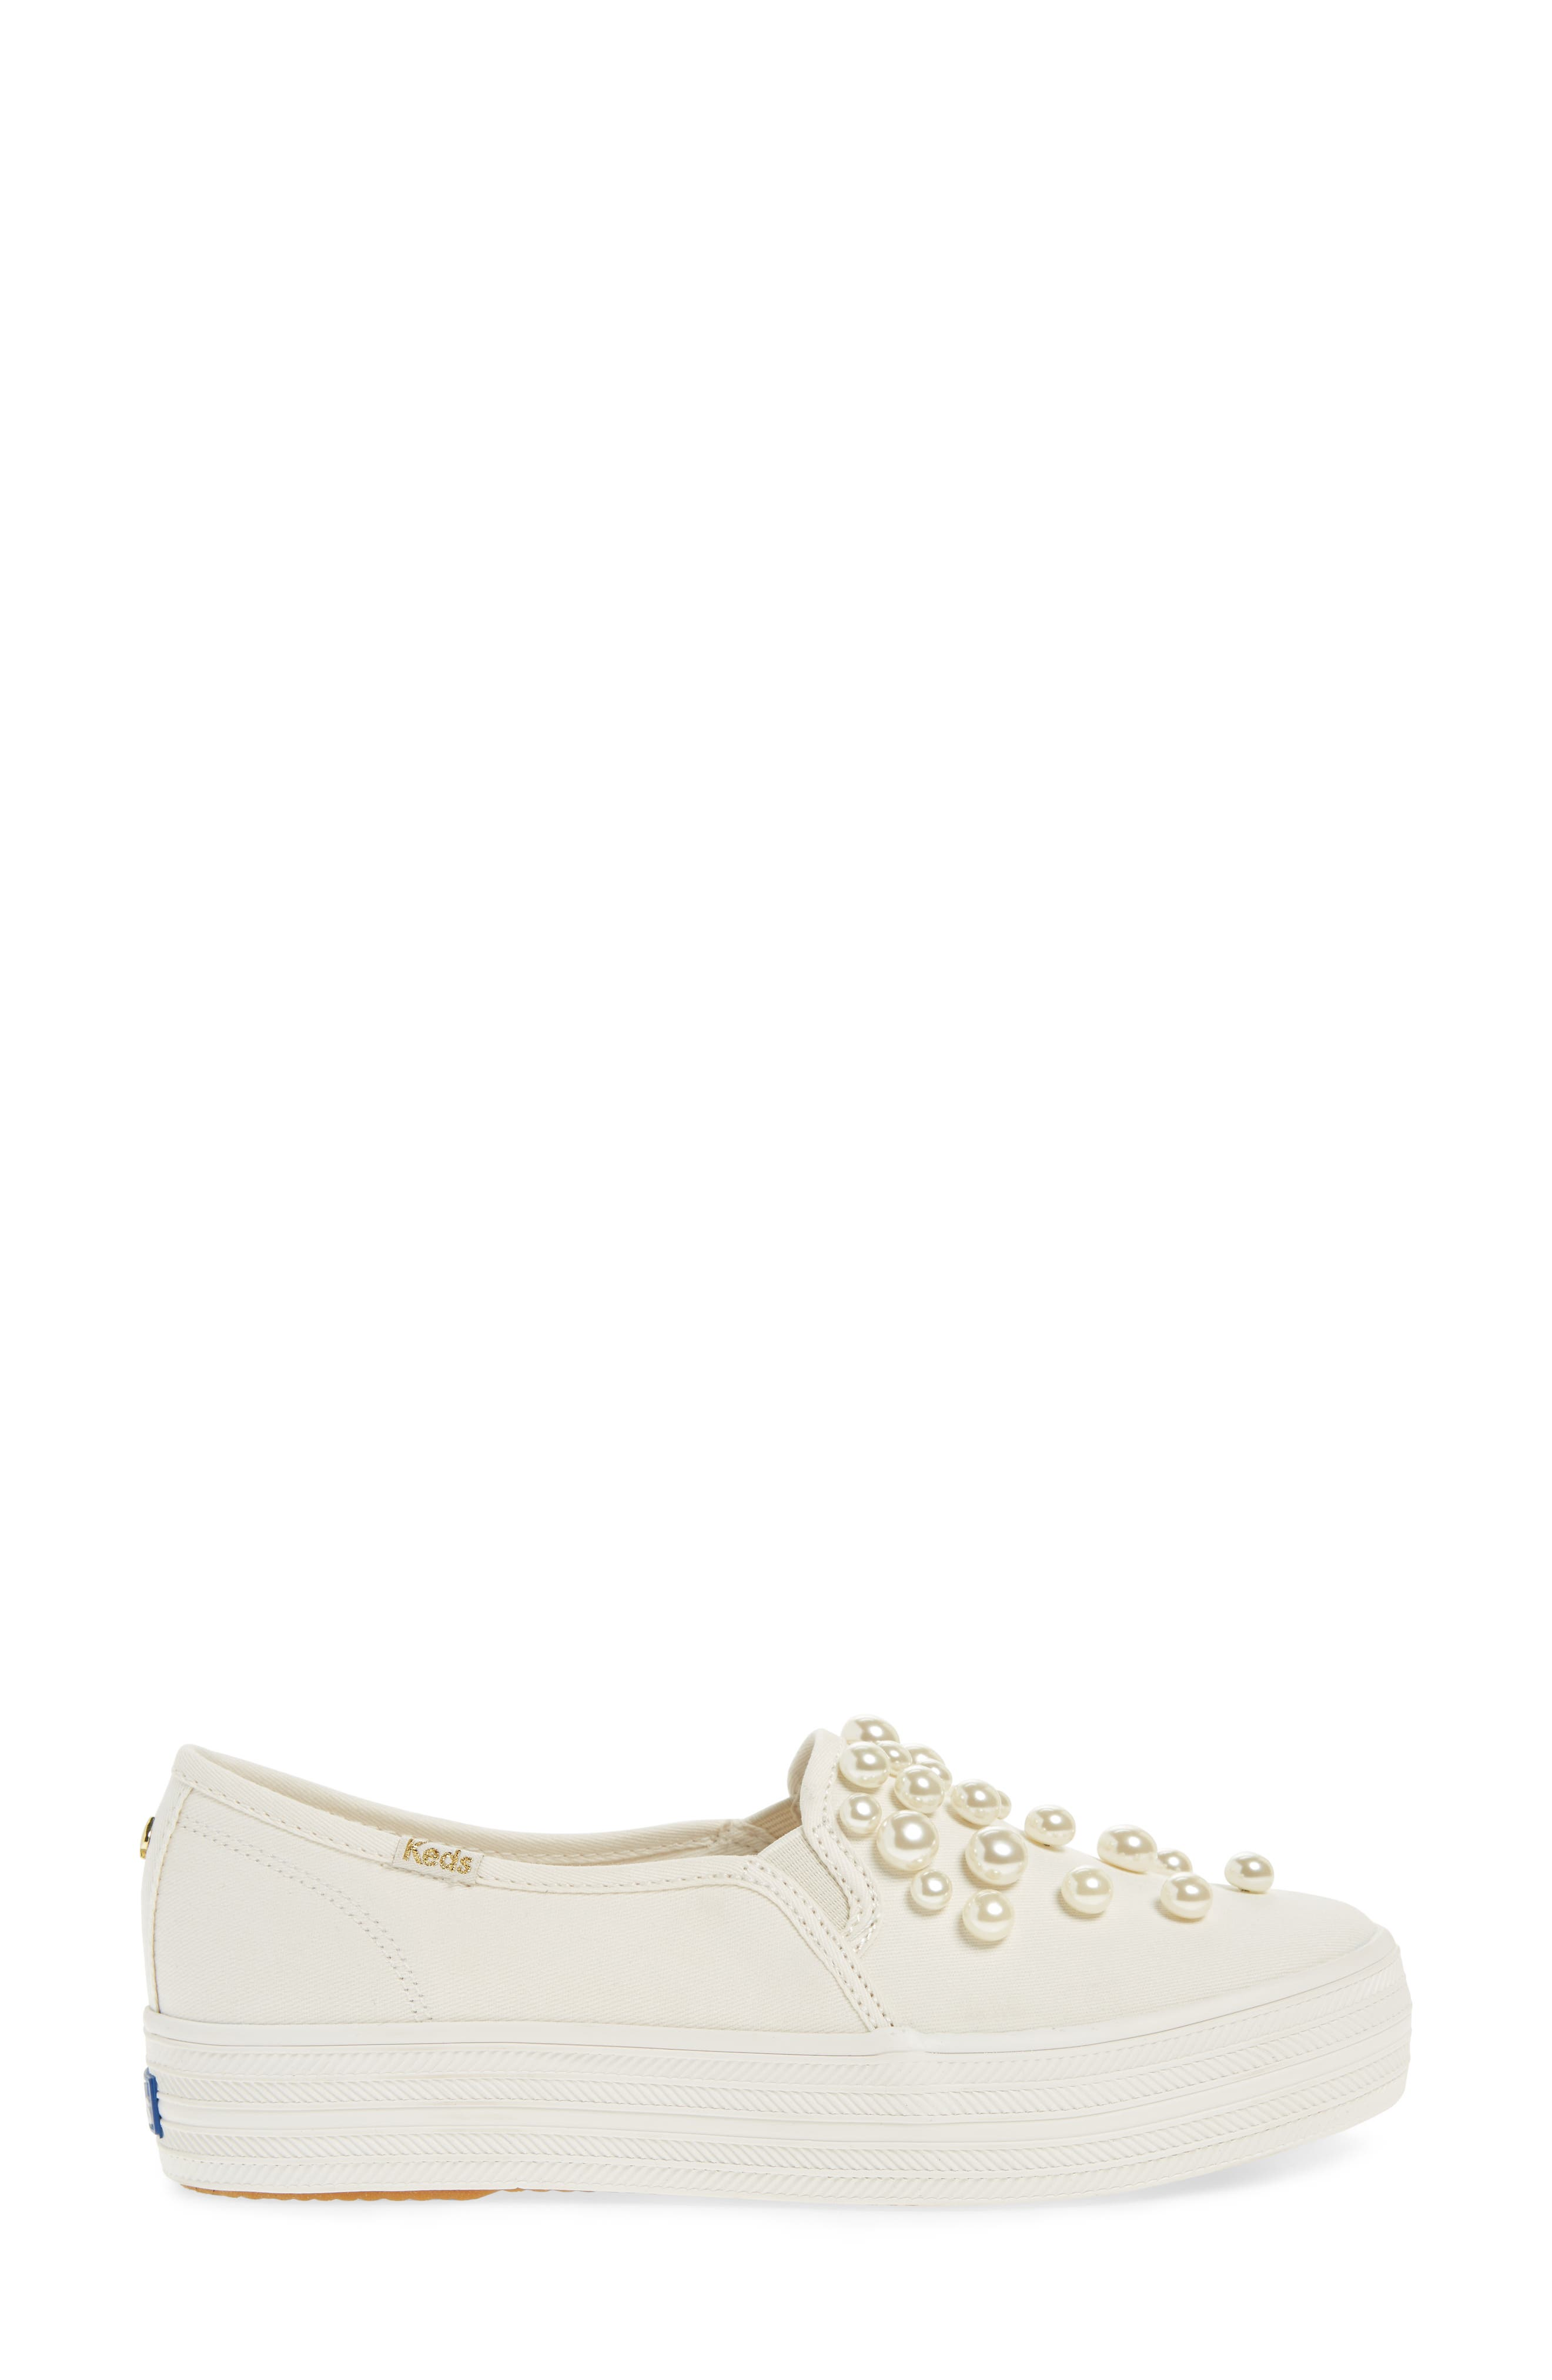 triple decker embellished slip-on sneaker,                             Alternate thumbnail 3, color,                             Cream